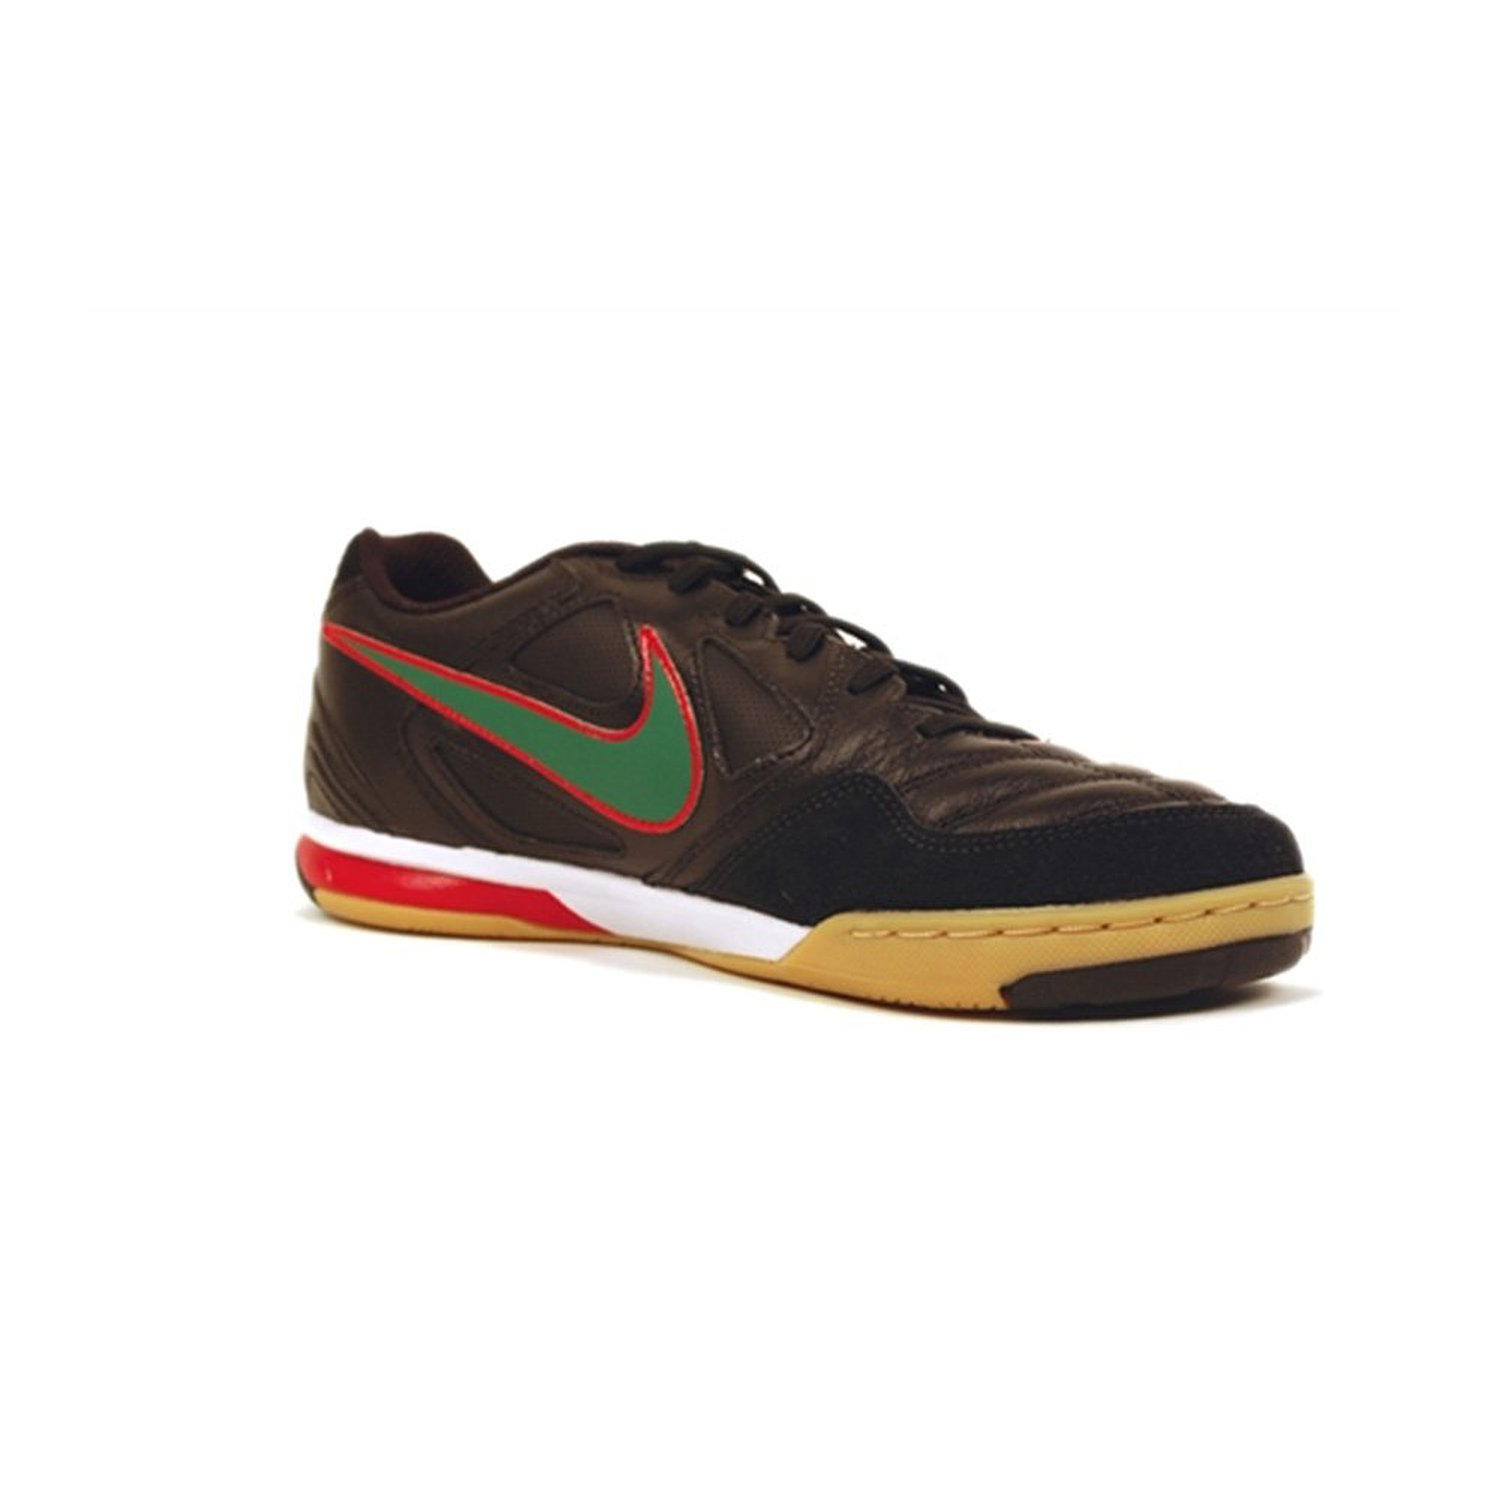 49c014349e8 Get Quotations · Mens 13 Nike5 Gato LEATHER Indoor Soccer Shoes